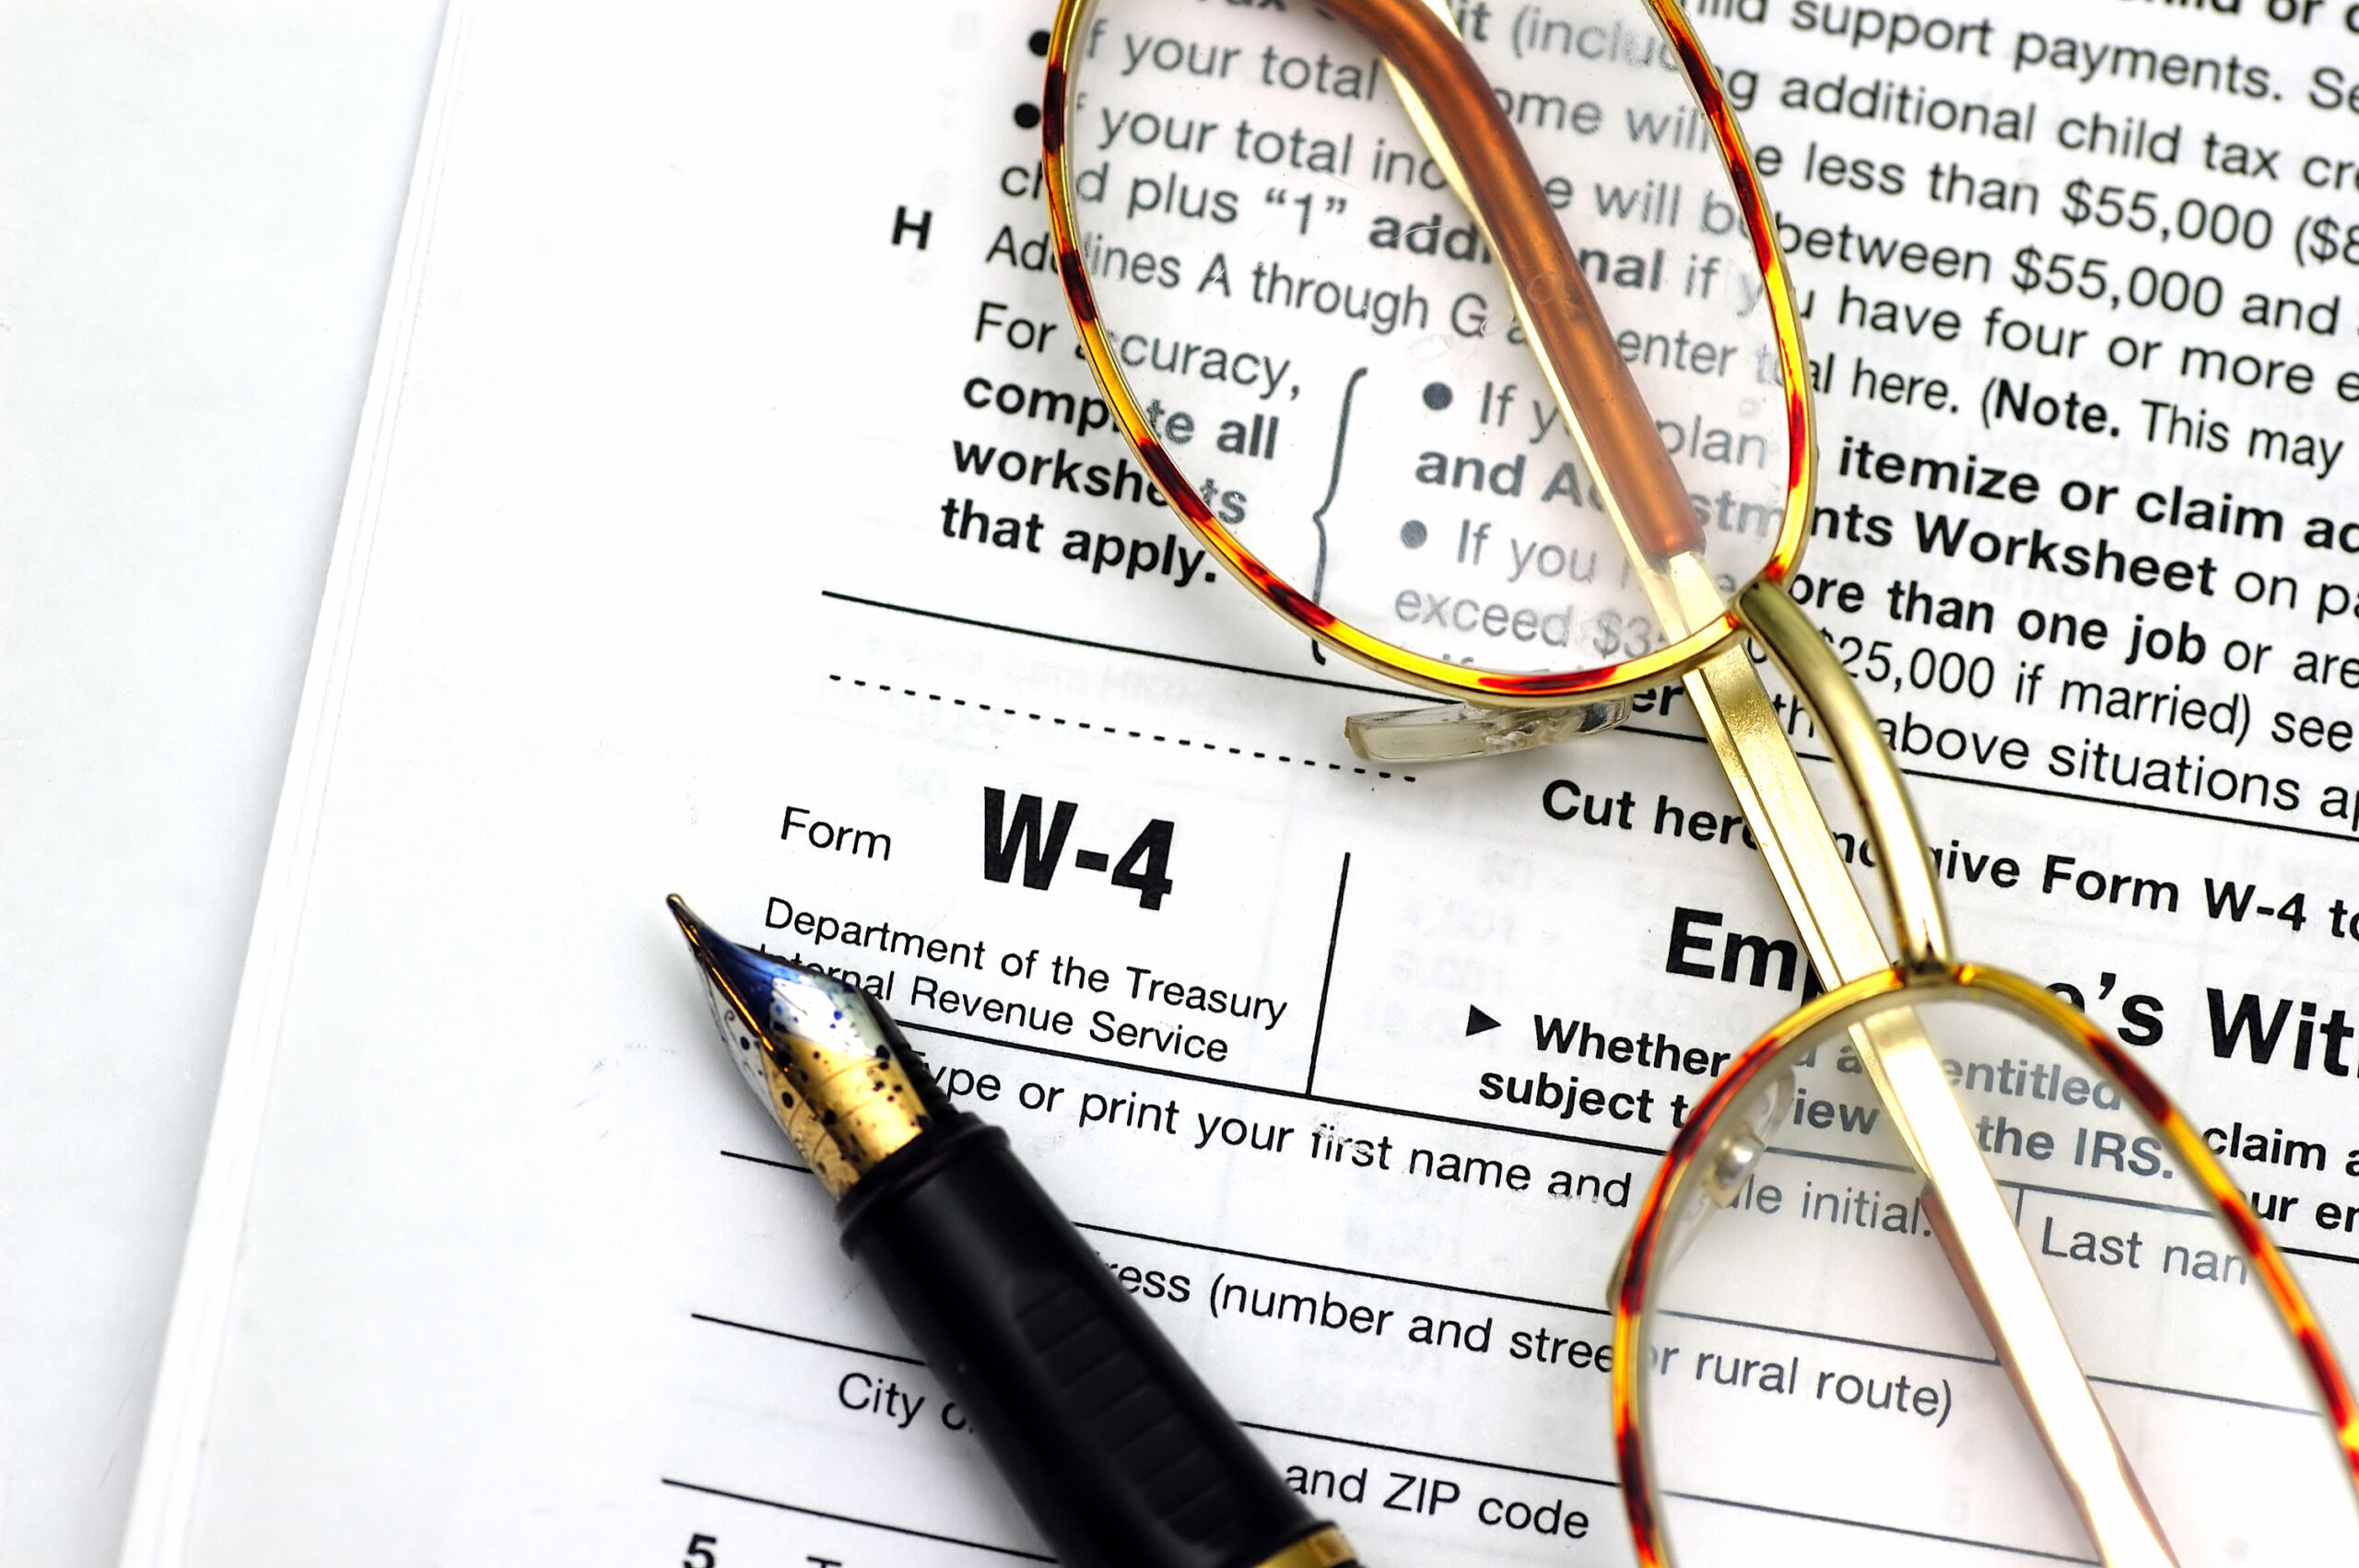 New 2020 Form W-4 for Your Employees